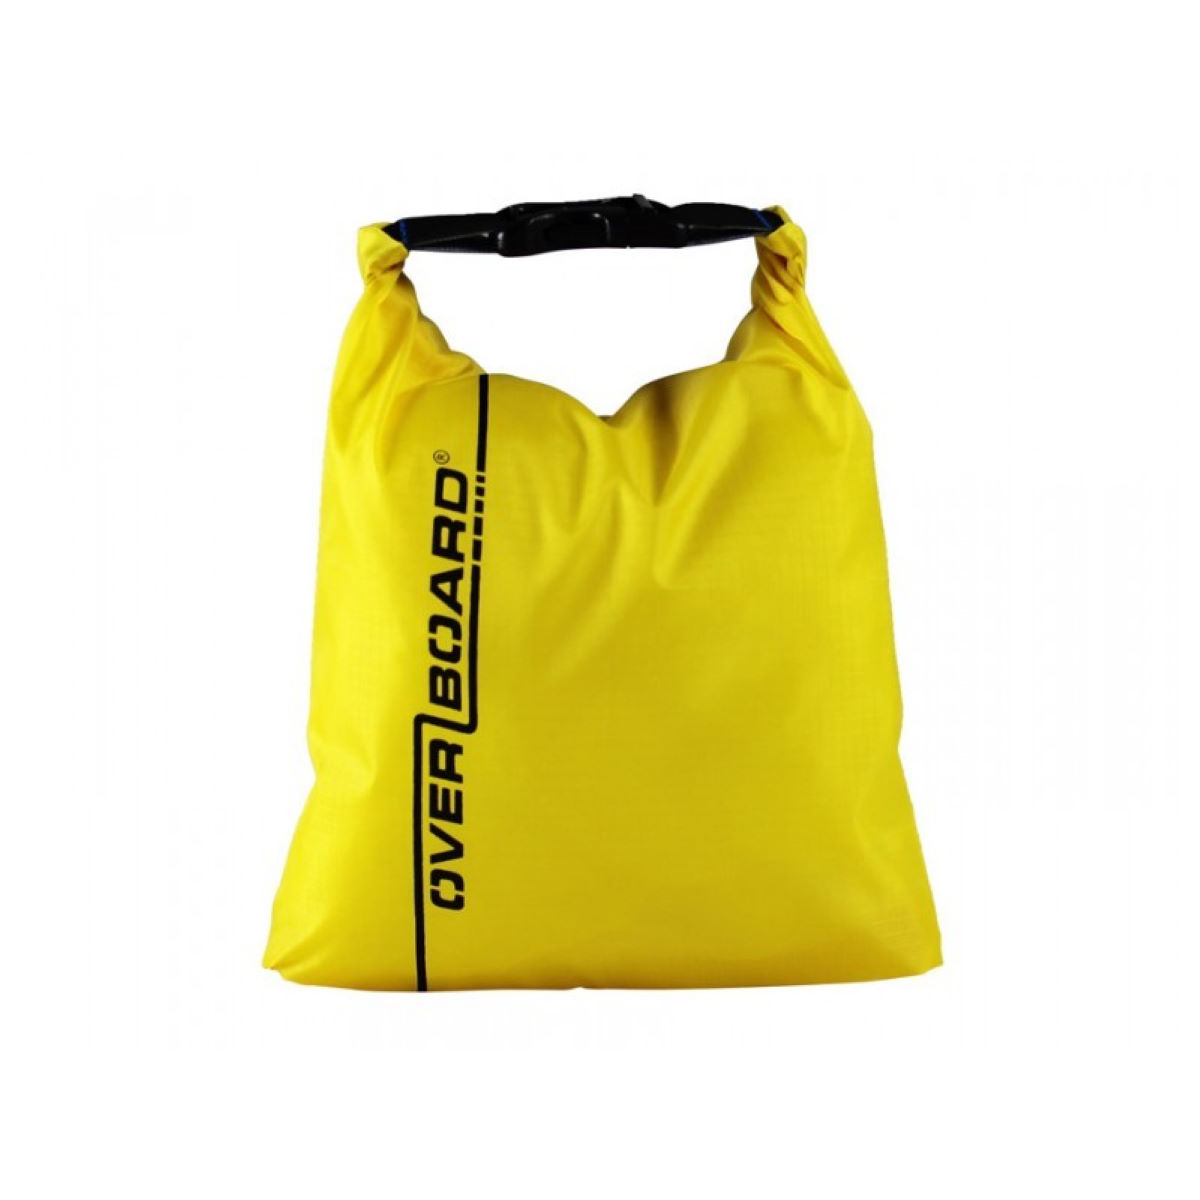 Pochette Overboard Dry - One Size Jaune Sacs étanches